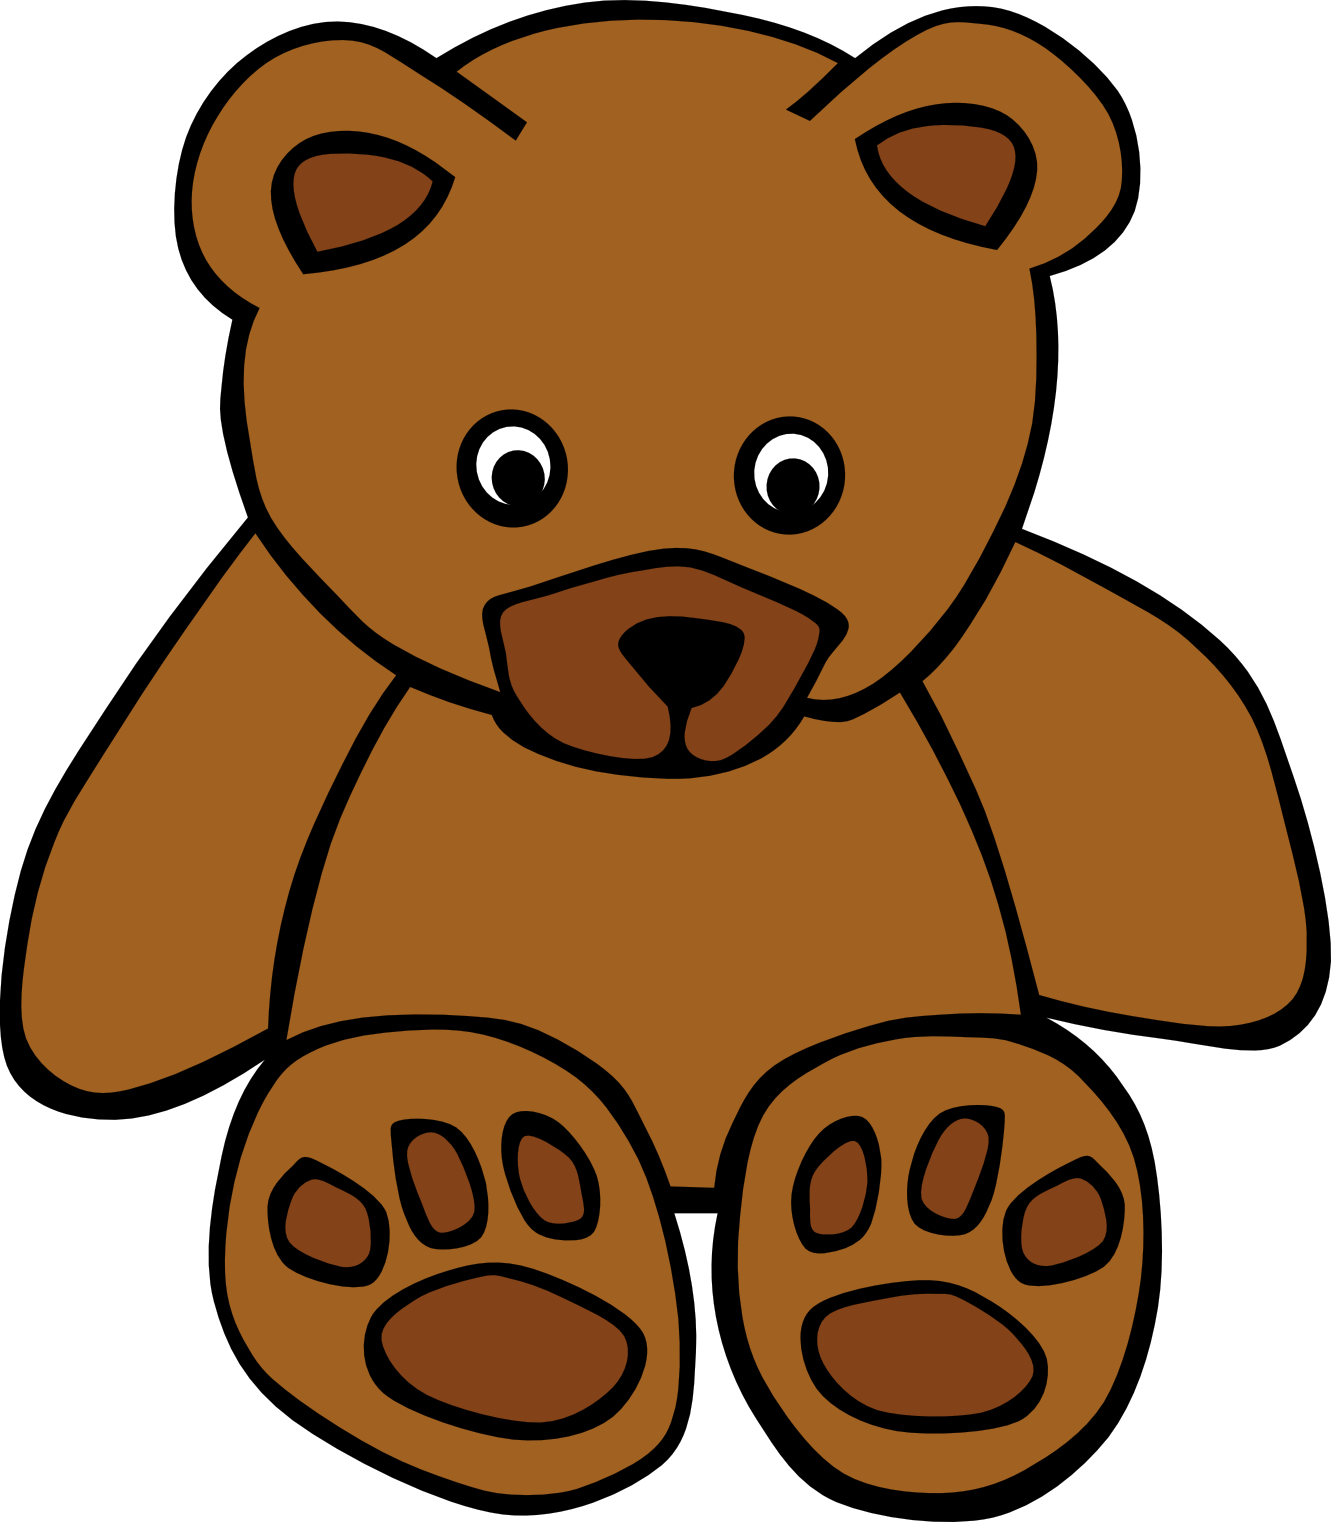 Stuffed Animal Clipart #1-Stuffed Animal Clipart #1-7